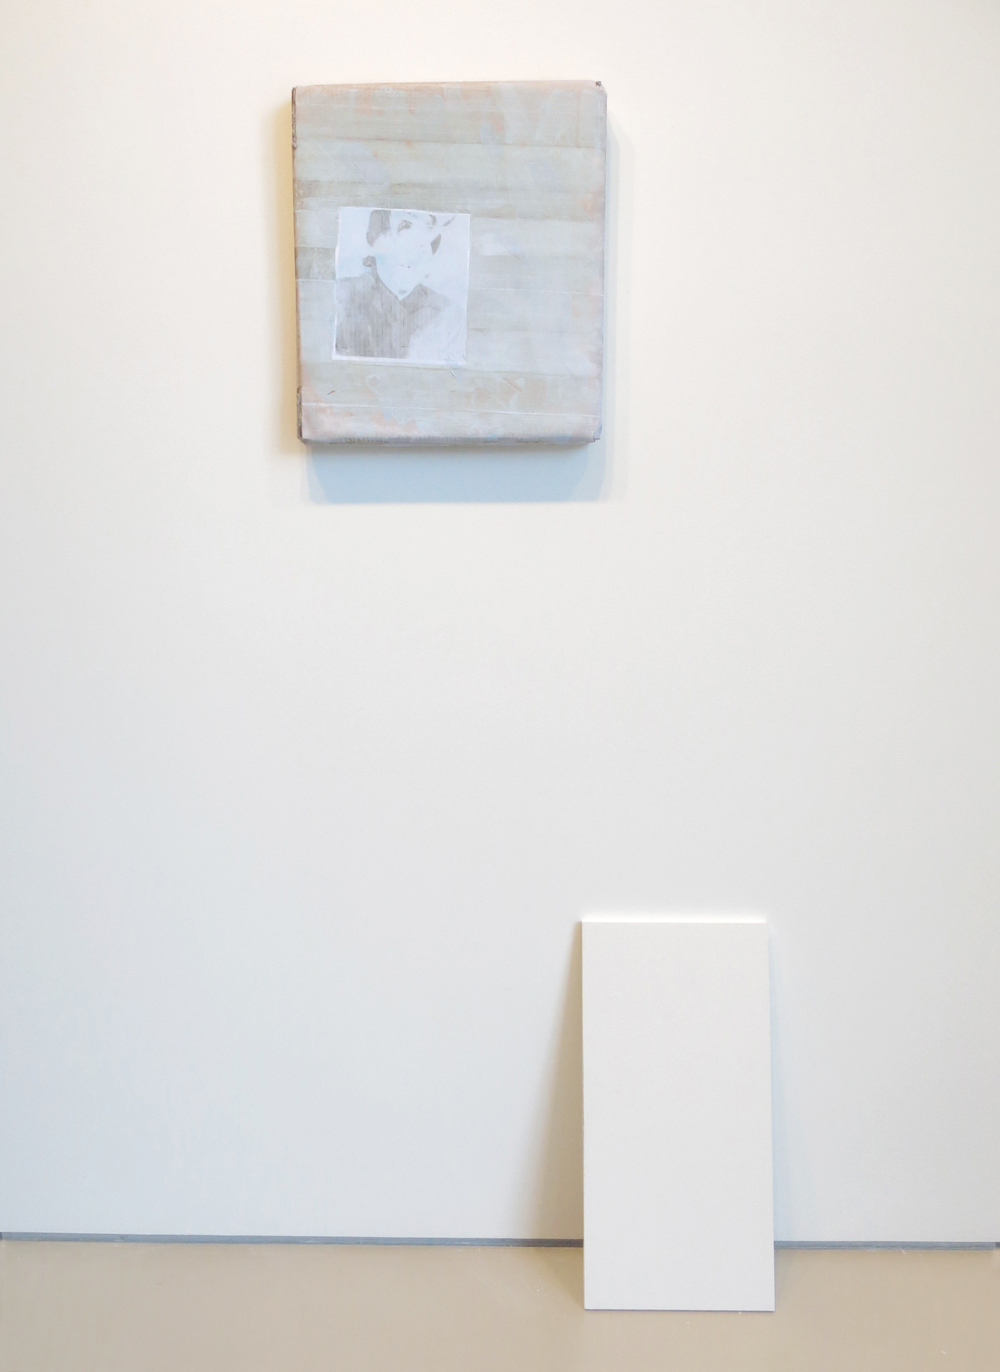 Lee Kit   1 , 2014 acrylic, emulsion paint, correction ink and inkjet ink on cardboard painting: 17.52 x 19.29 x 1.97 inches 44.5 x 49 x 5 cm installation: dimensions variable